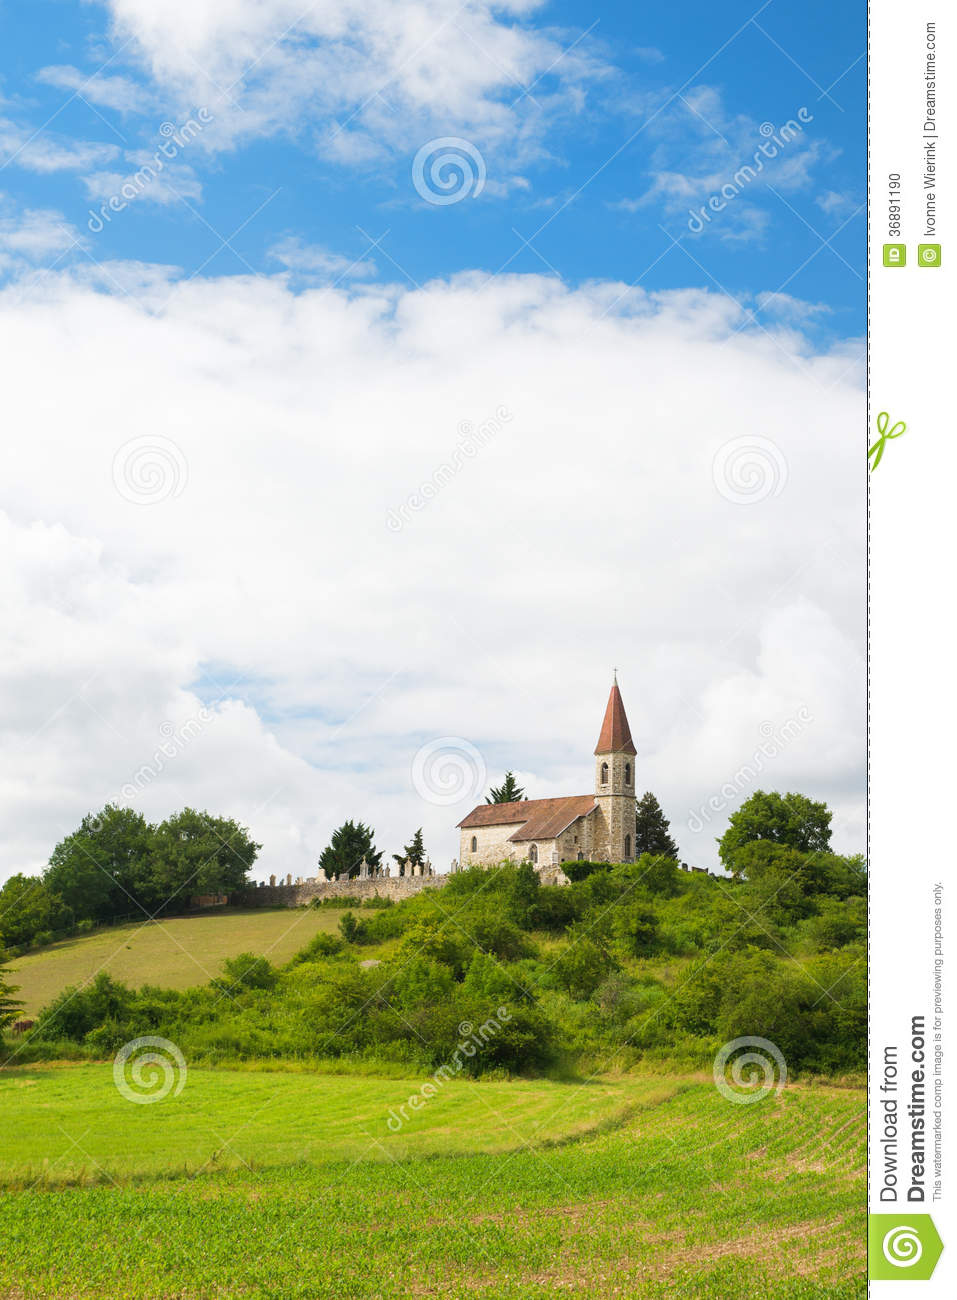 Download Chiesa in Francia fotografia stock. Immagine di francese - 36891190